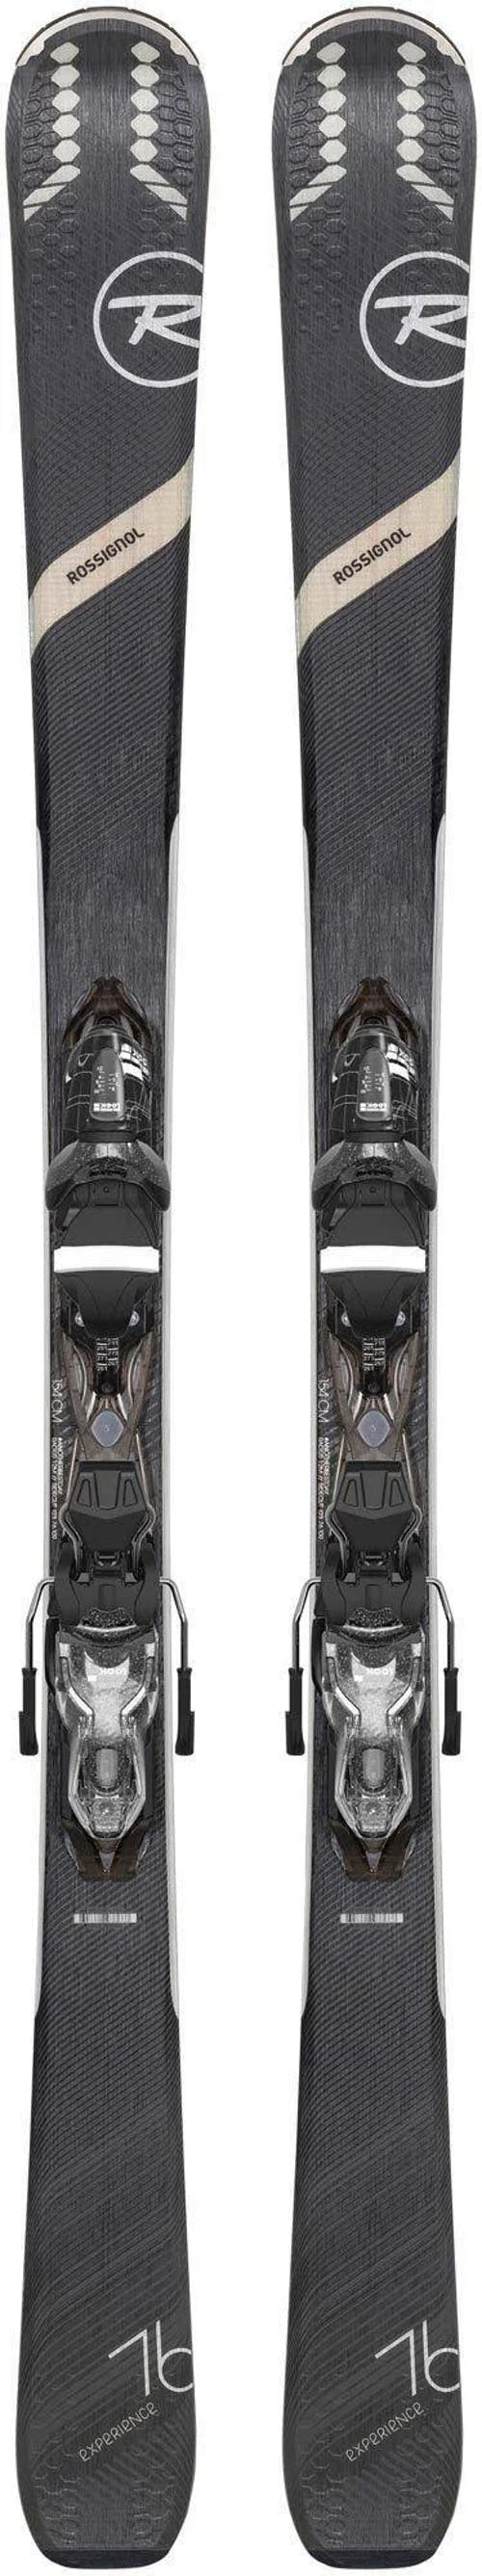 Rossignol Experience 76 CI Skis with Xpress 10 Bindings Women's · 2020